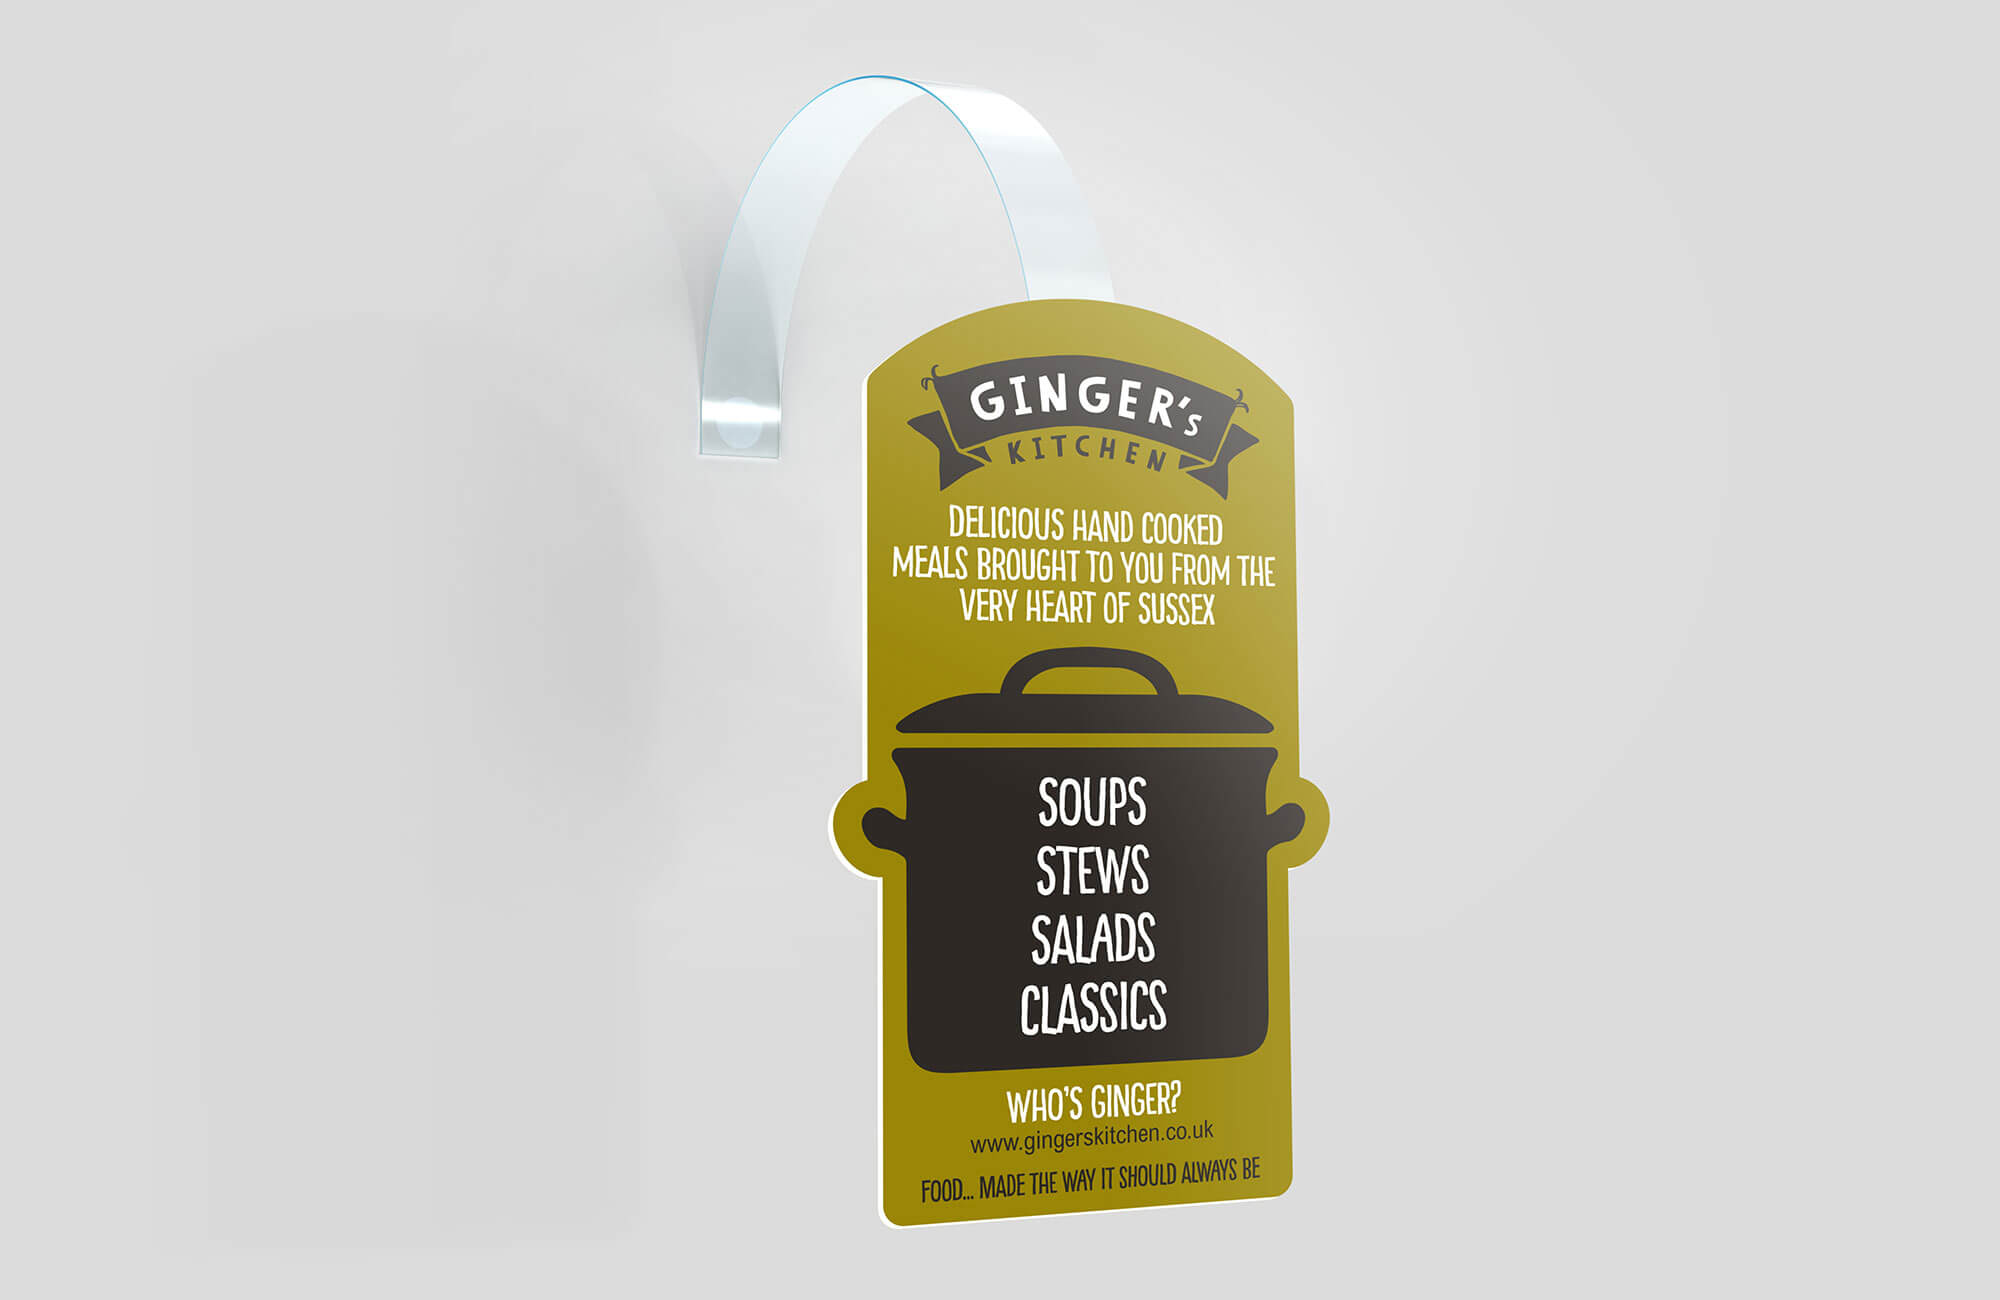 Ginger's Kitchen POS Shelf Wobbler Design and Printing